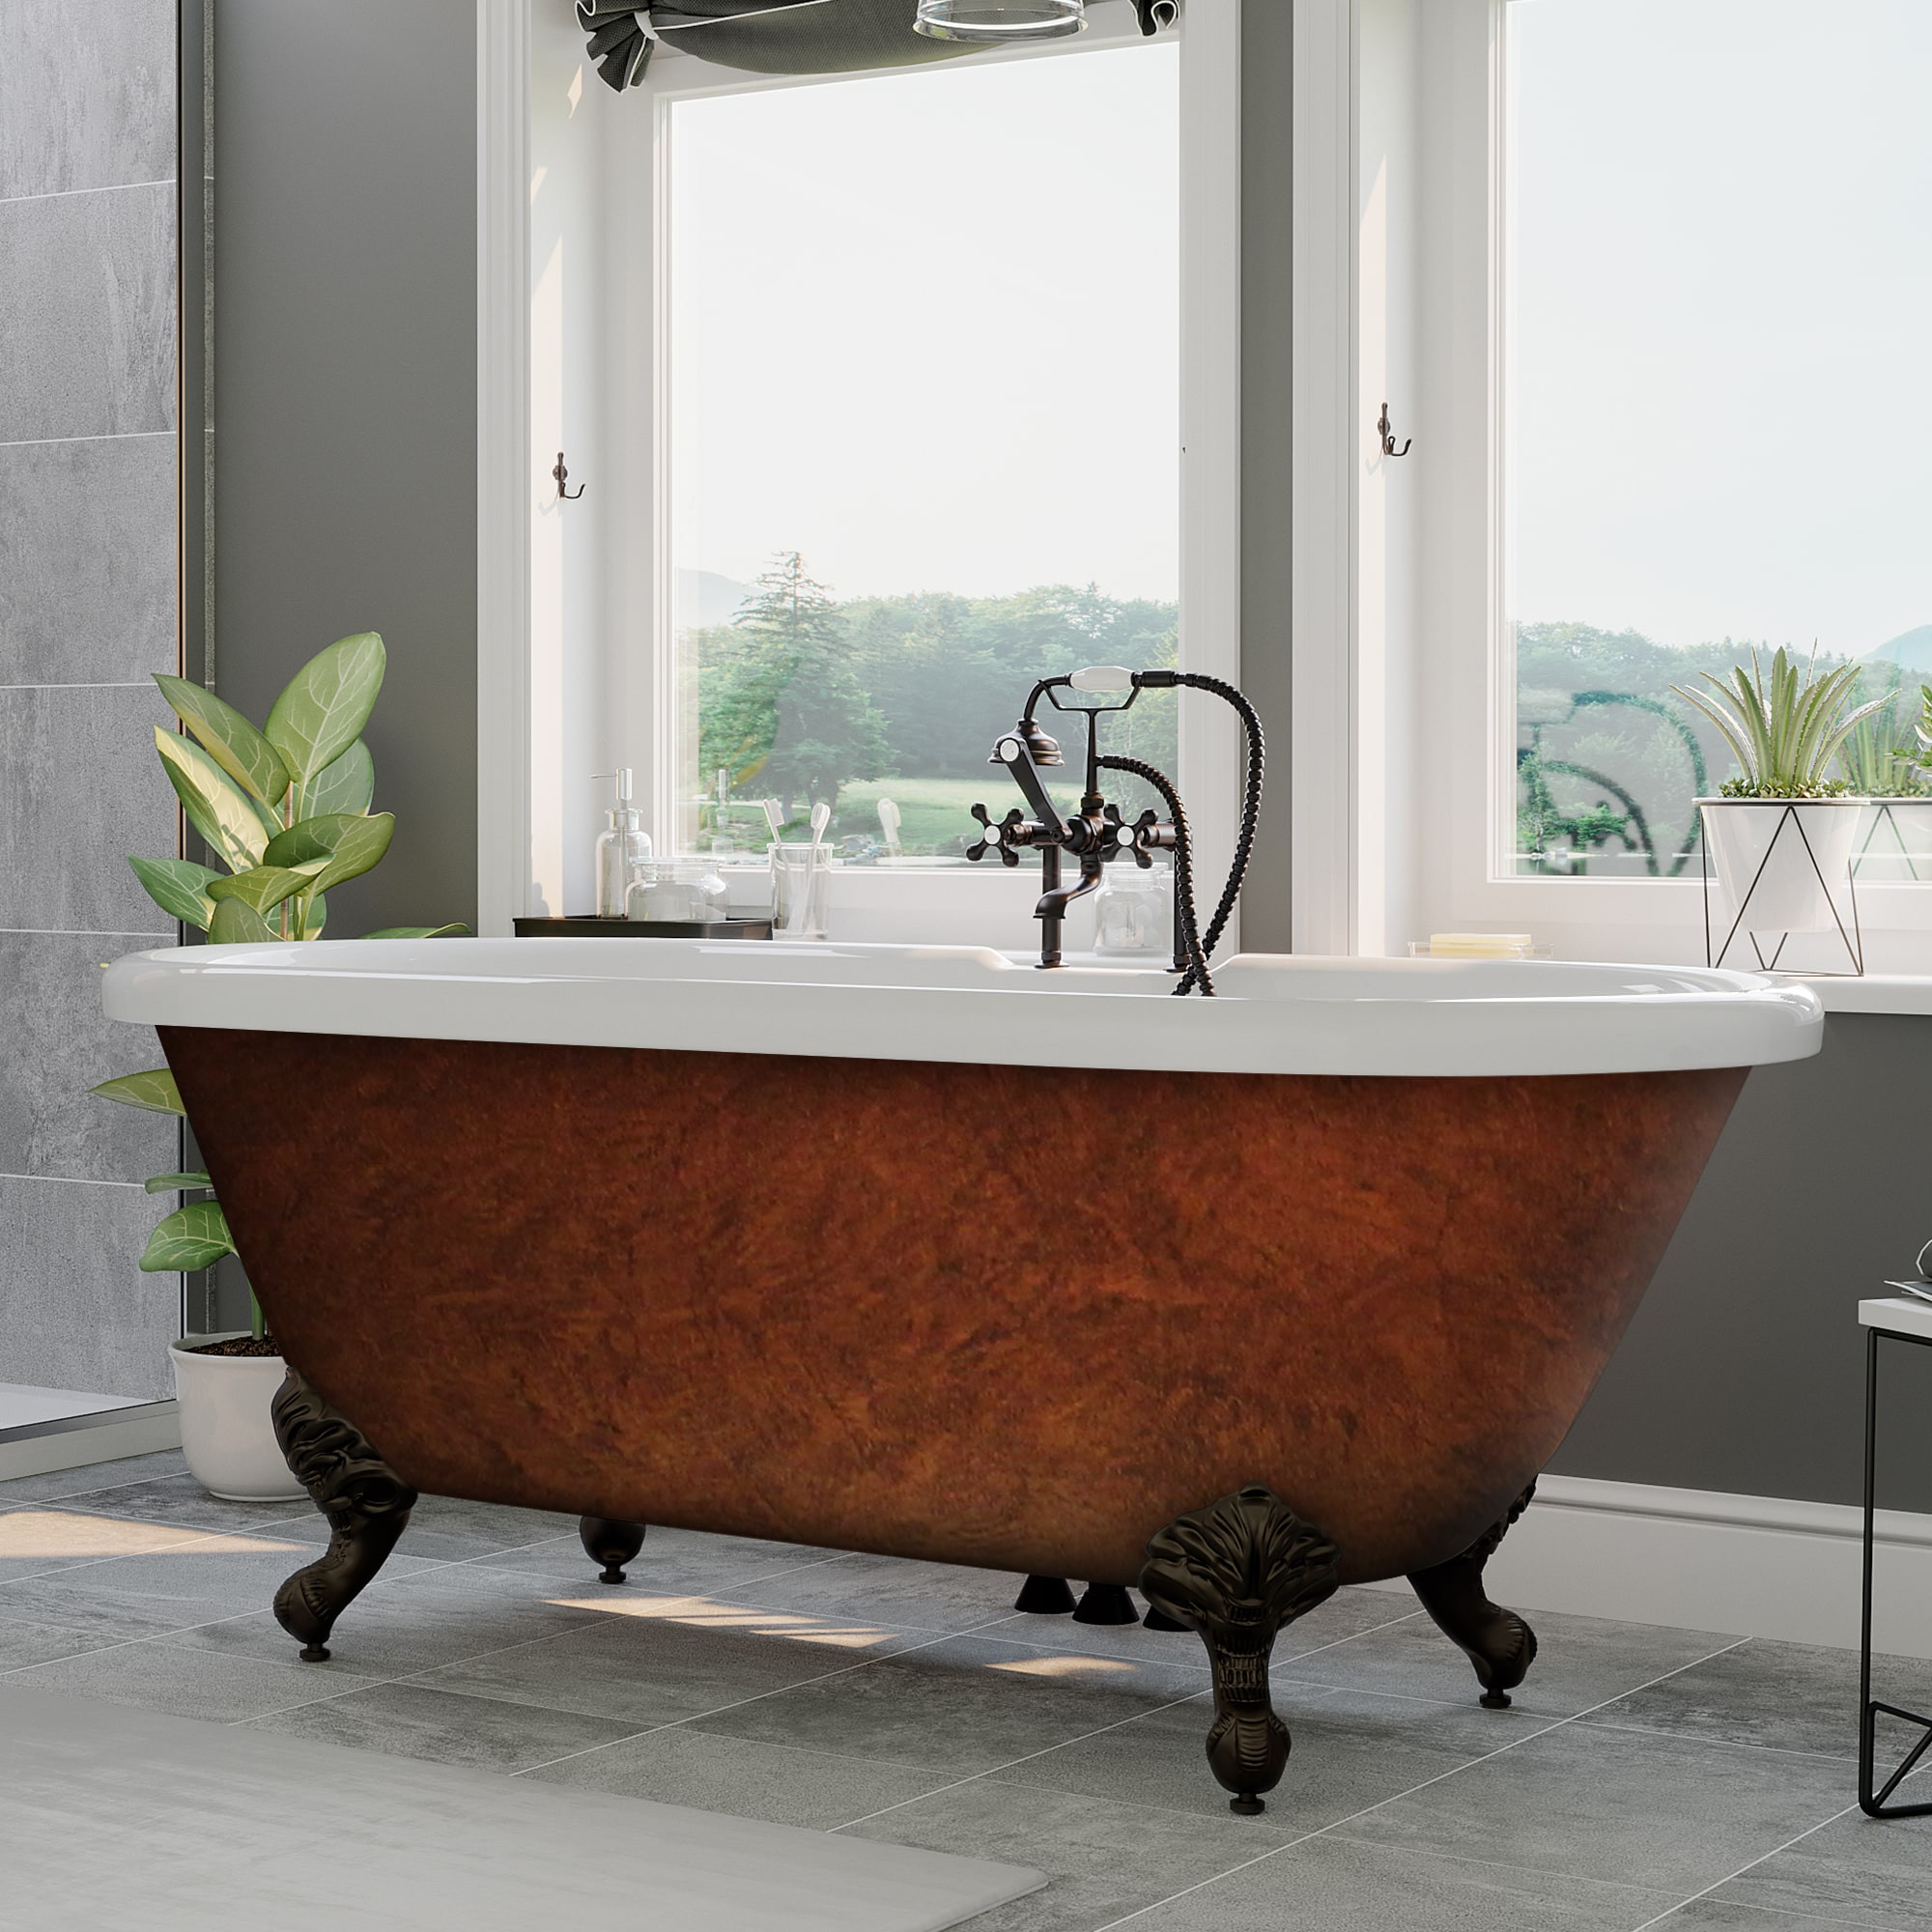 "Cambridge ADE-DH-ORB-CB Bronze Clawfoot Bathtub With 7"" Faucet Drillings"